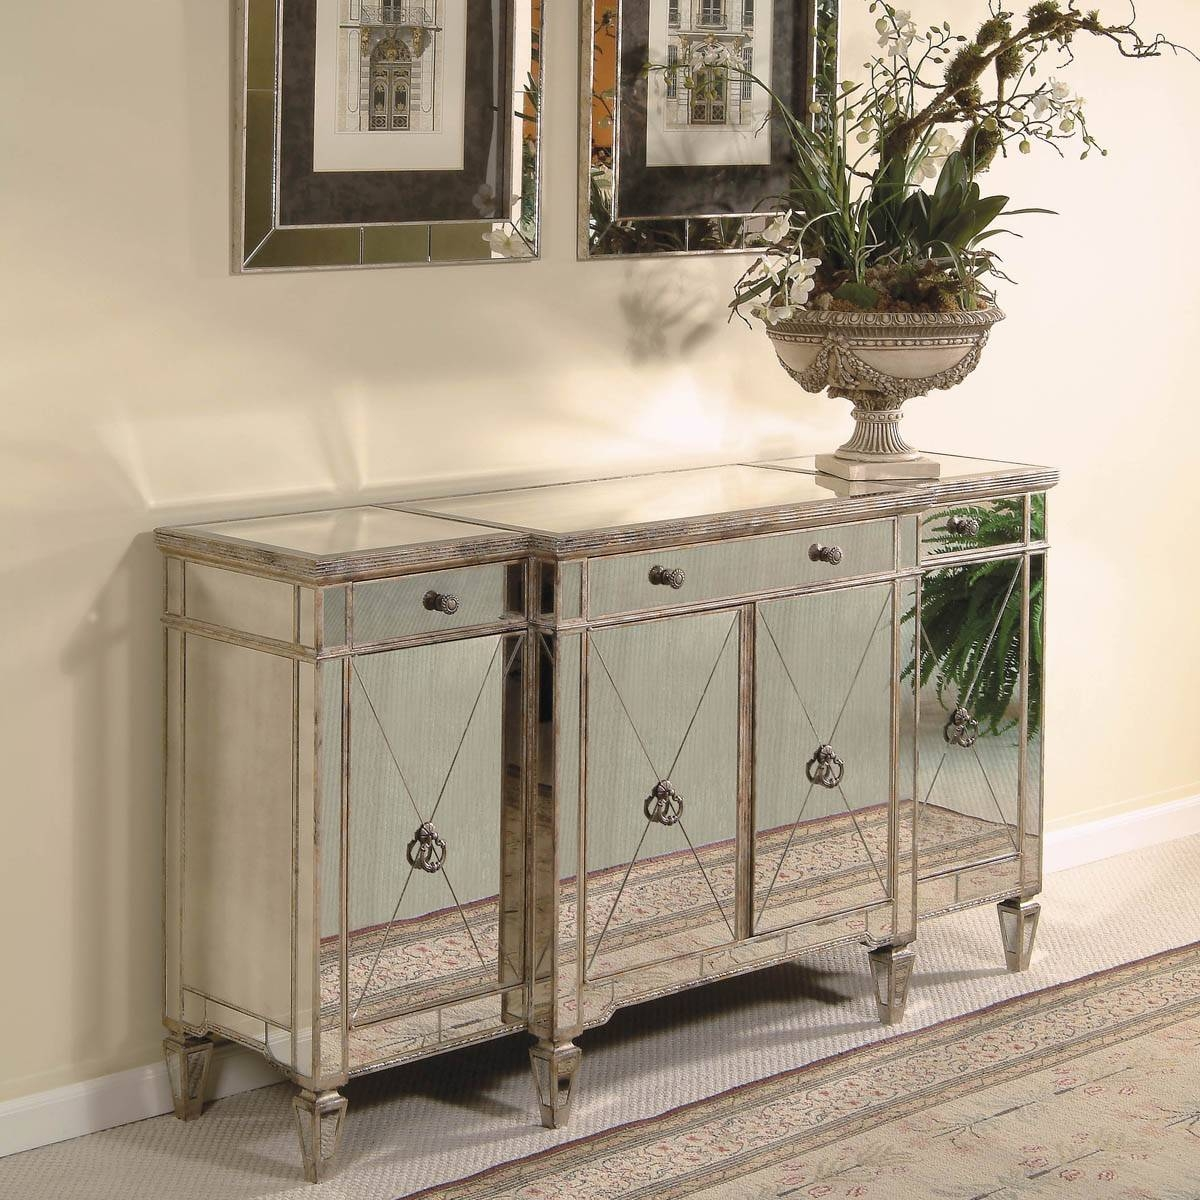 Furniture: Mirrored Computer Desk | Mirrored Buffet | Antique For Mirrored Sideboards Furniture (View 10 of 15)